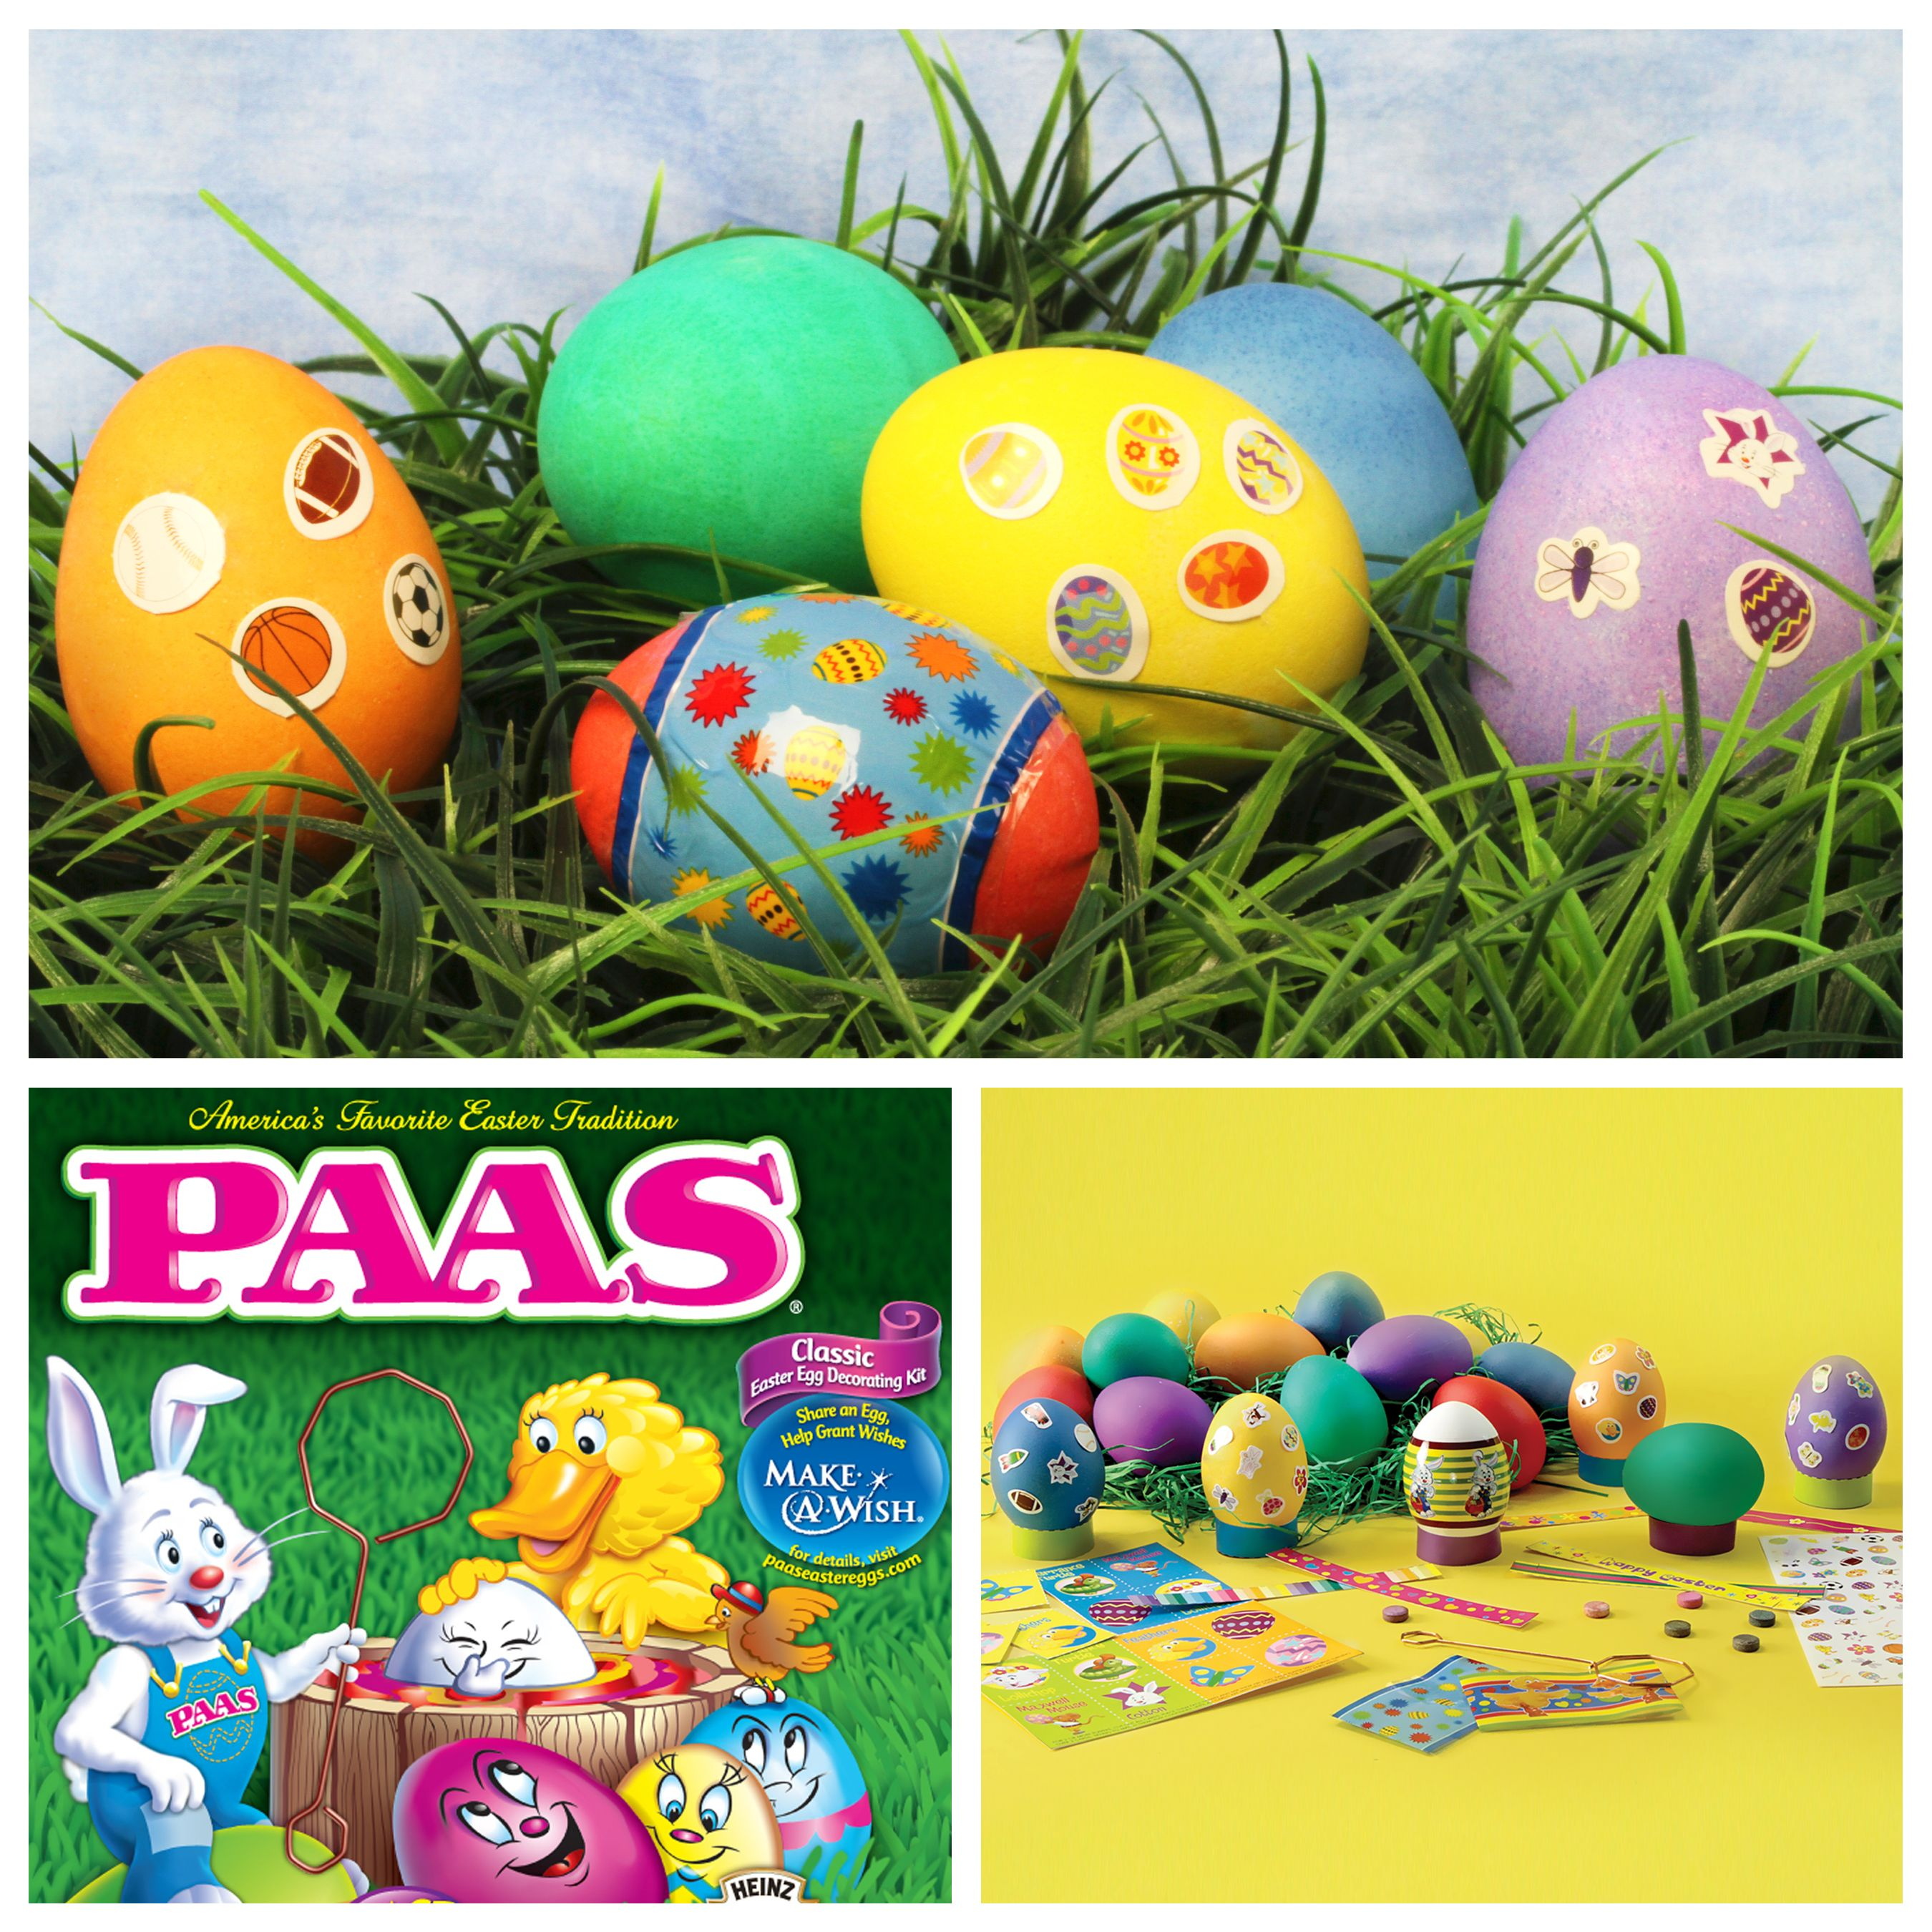 Medium Friends #Easter egg decorating kit from PAAS | PAAS ...